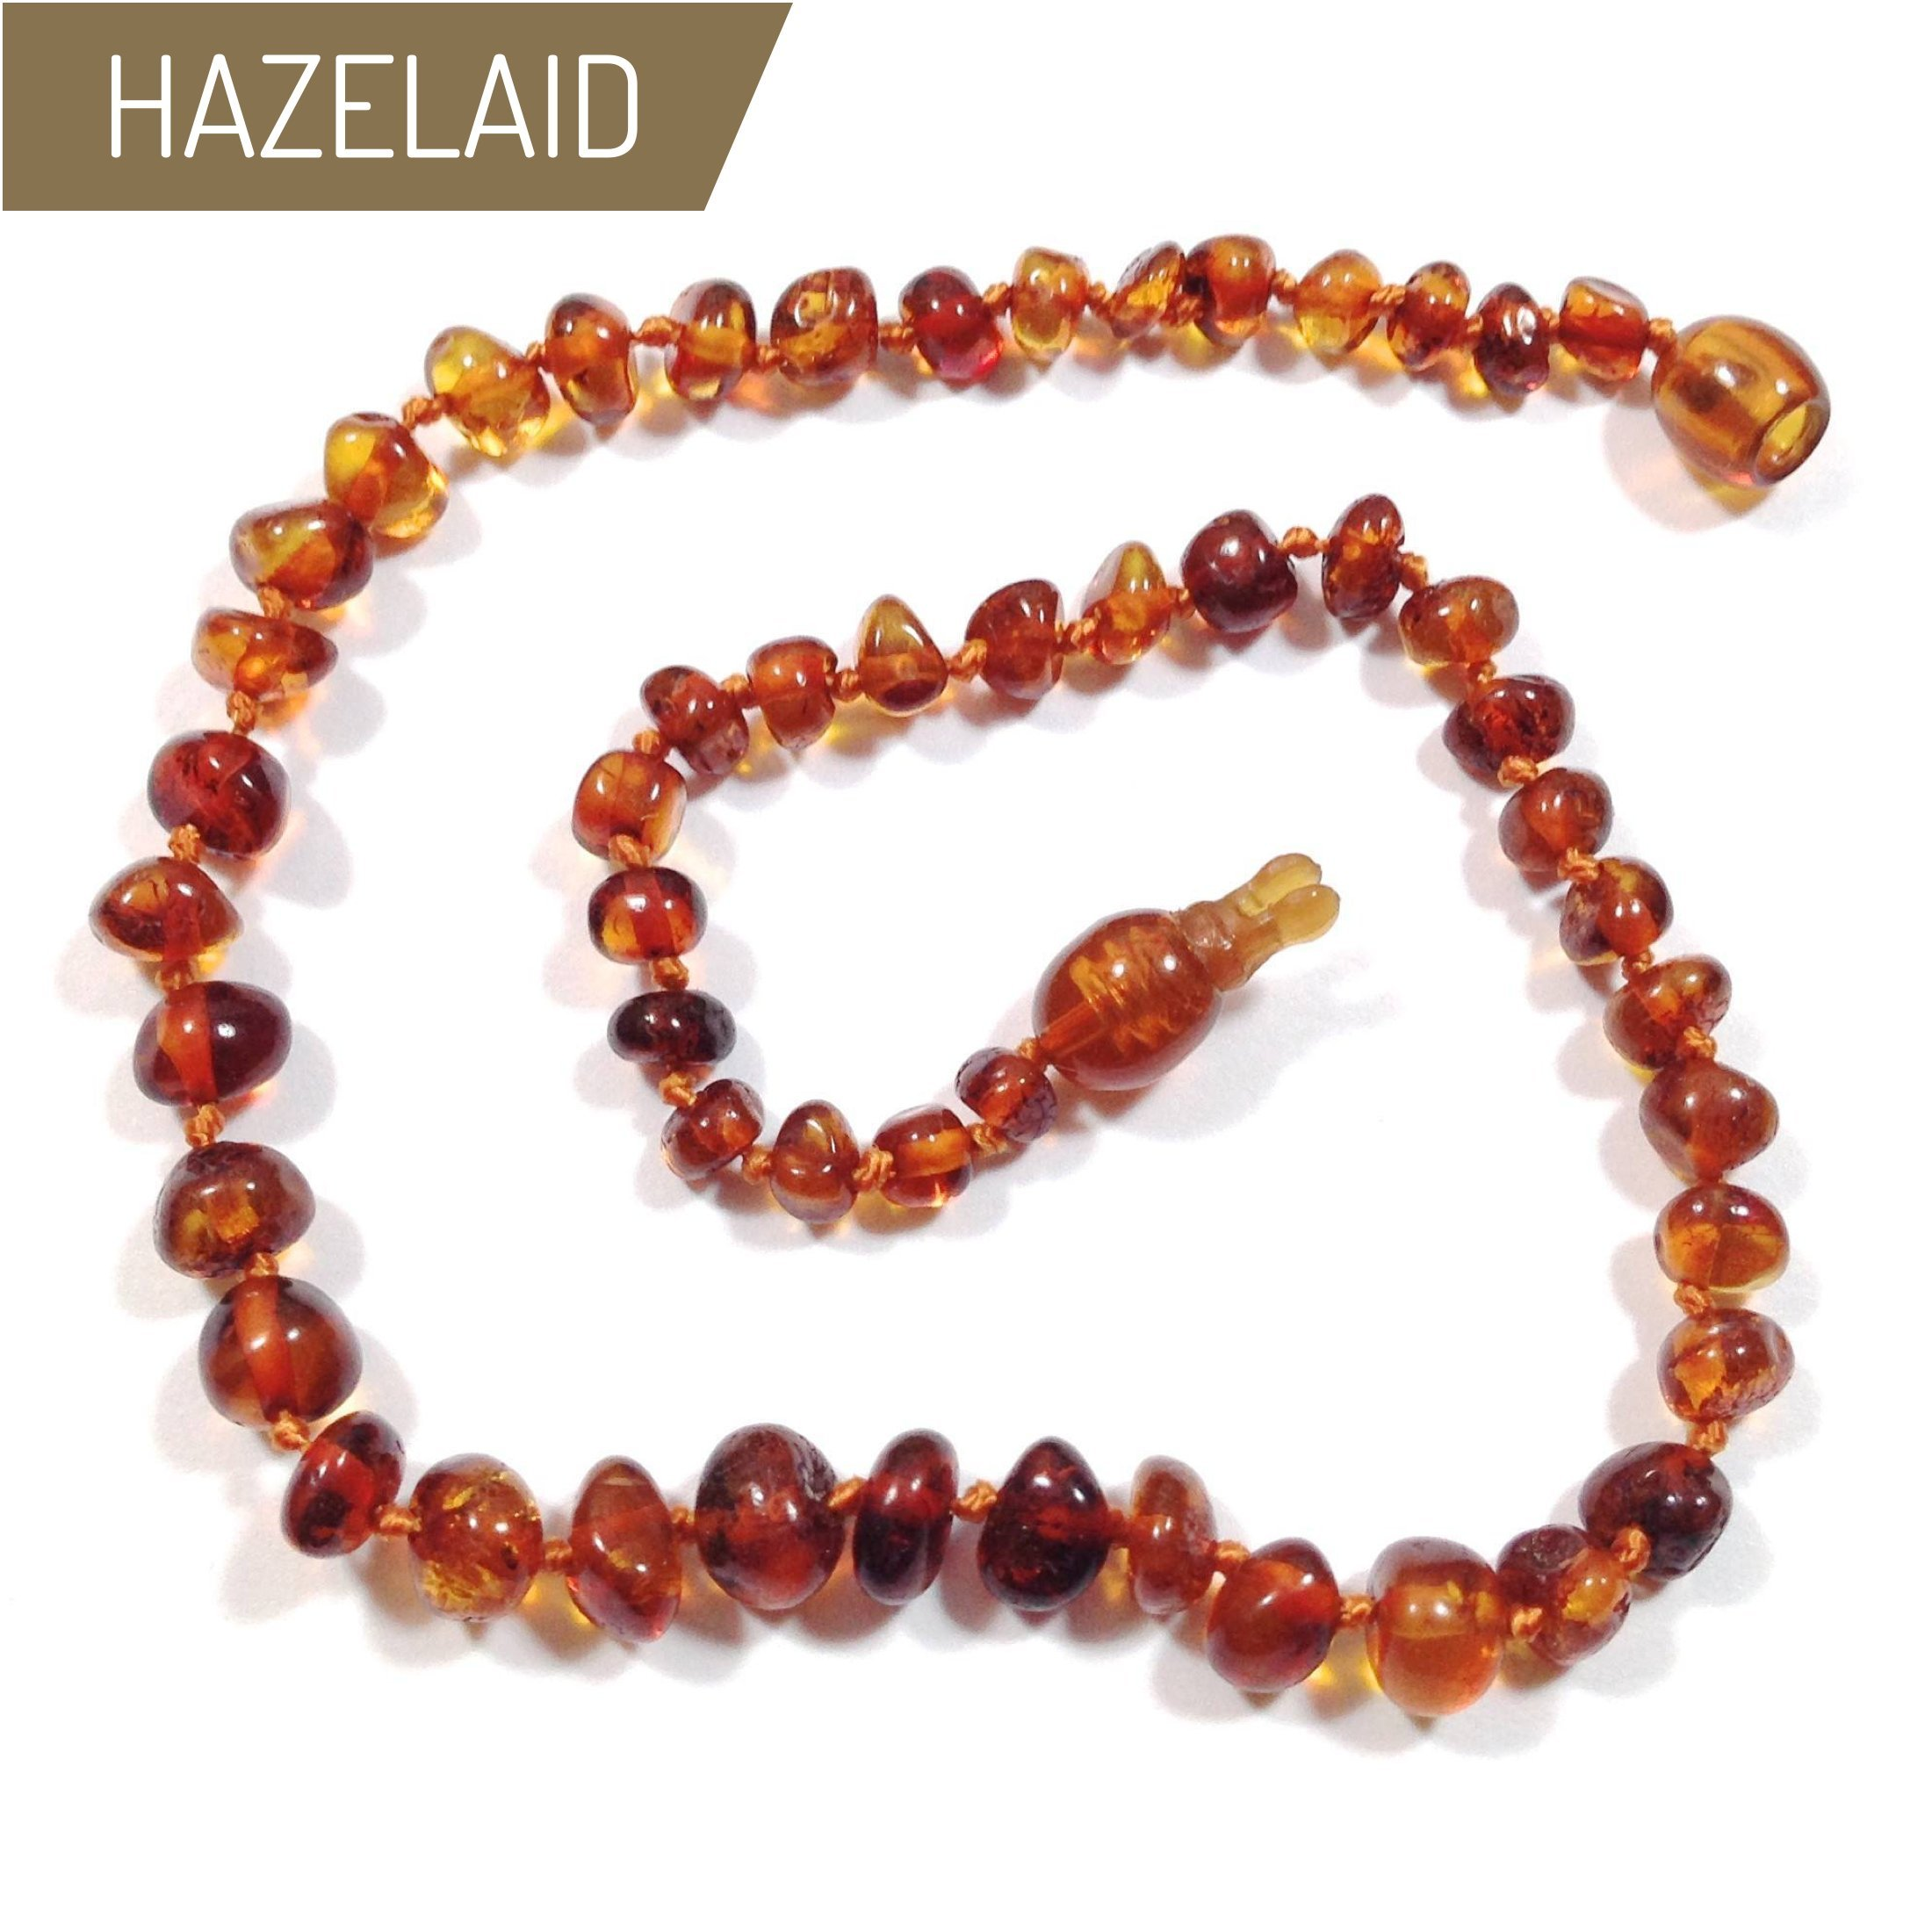 Hazelaid (TM) 12'' Pop-Clasp Baltic Amber Cognac Necklace